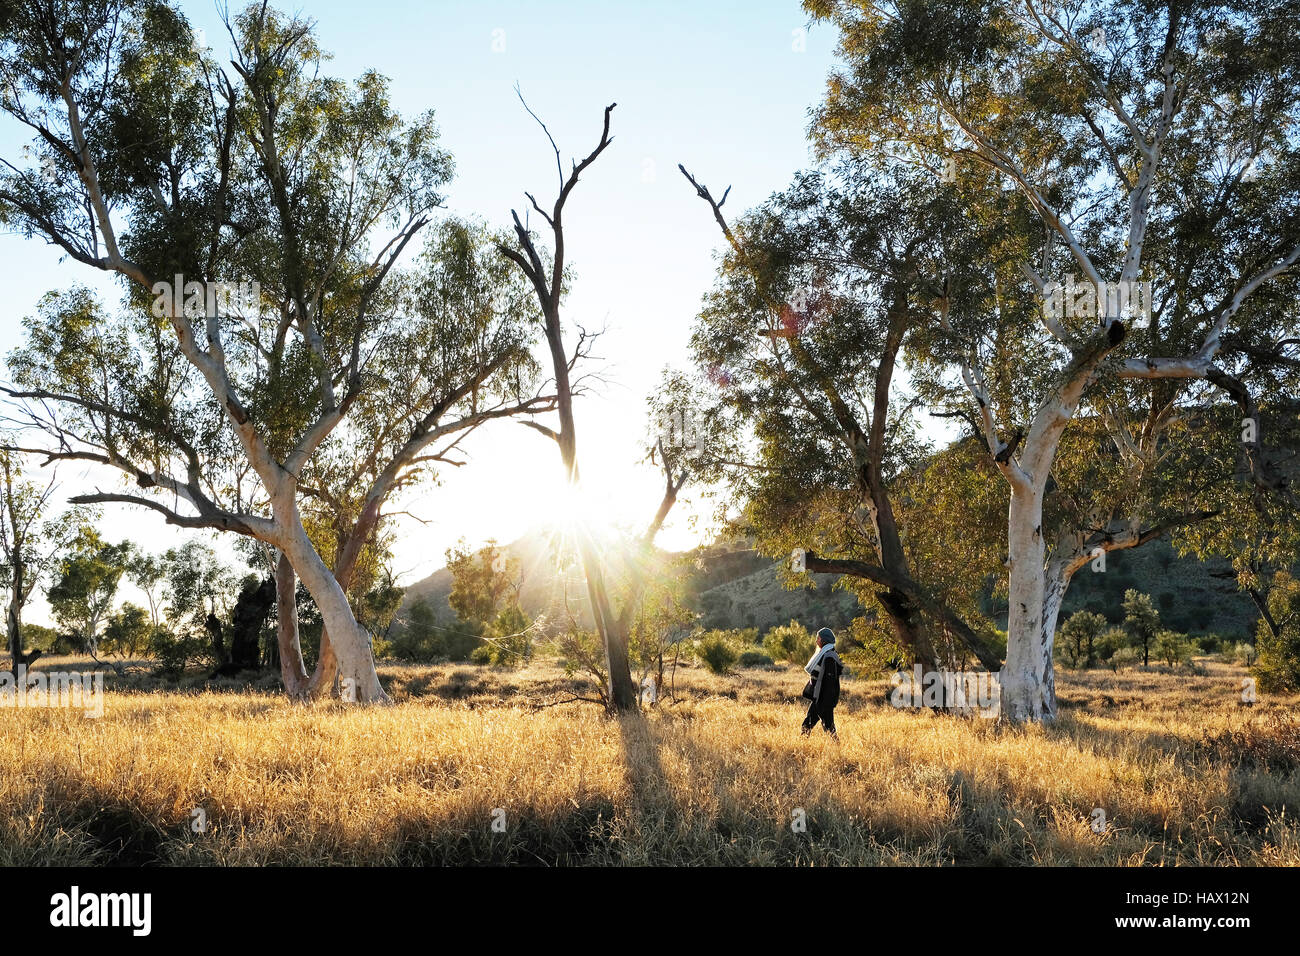 A woman walks through the morning sun at Honeymoon Gap in the MacDonnell Ranges, Northern Territory, Central Australia - Stock Image